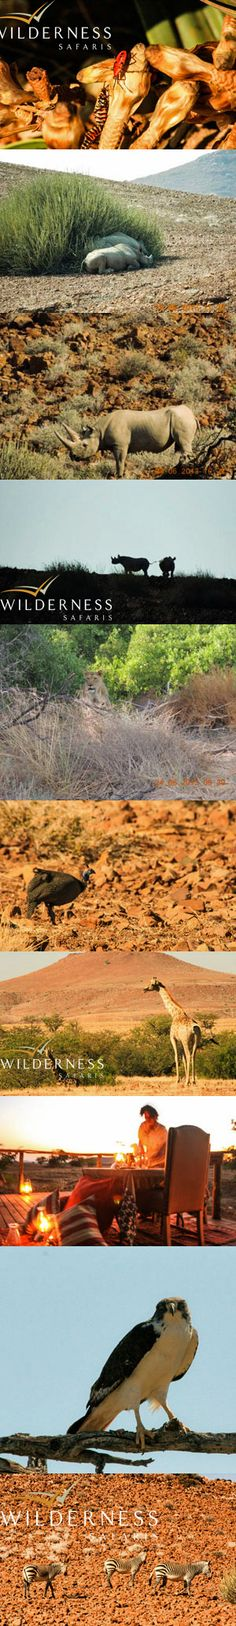 We Are Wilderness - June highlights from Desert Rhino Camp. Click on the image for more pictures. Winter Camping, More Pictures, Conservation, Wilderness, Safari, Tourism, Highlights, Deserts, June